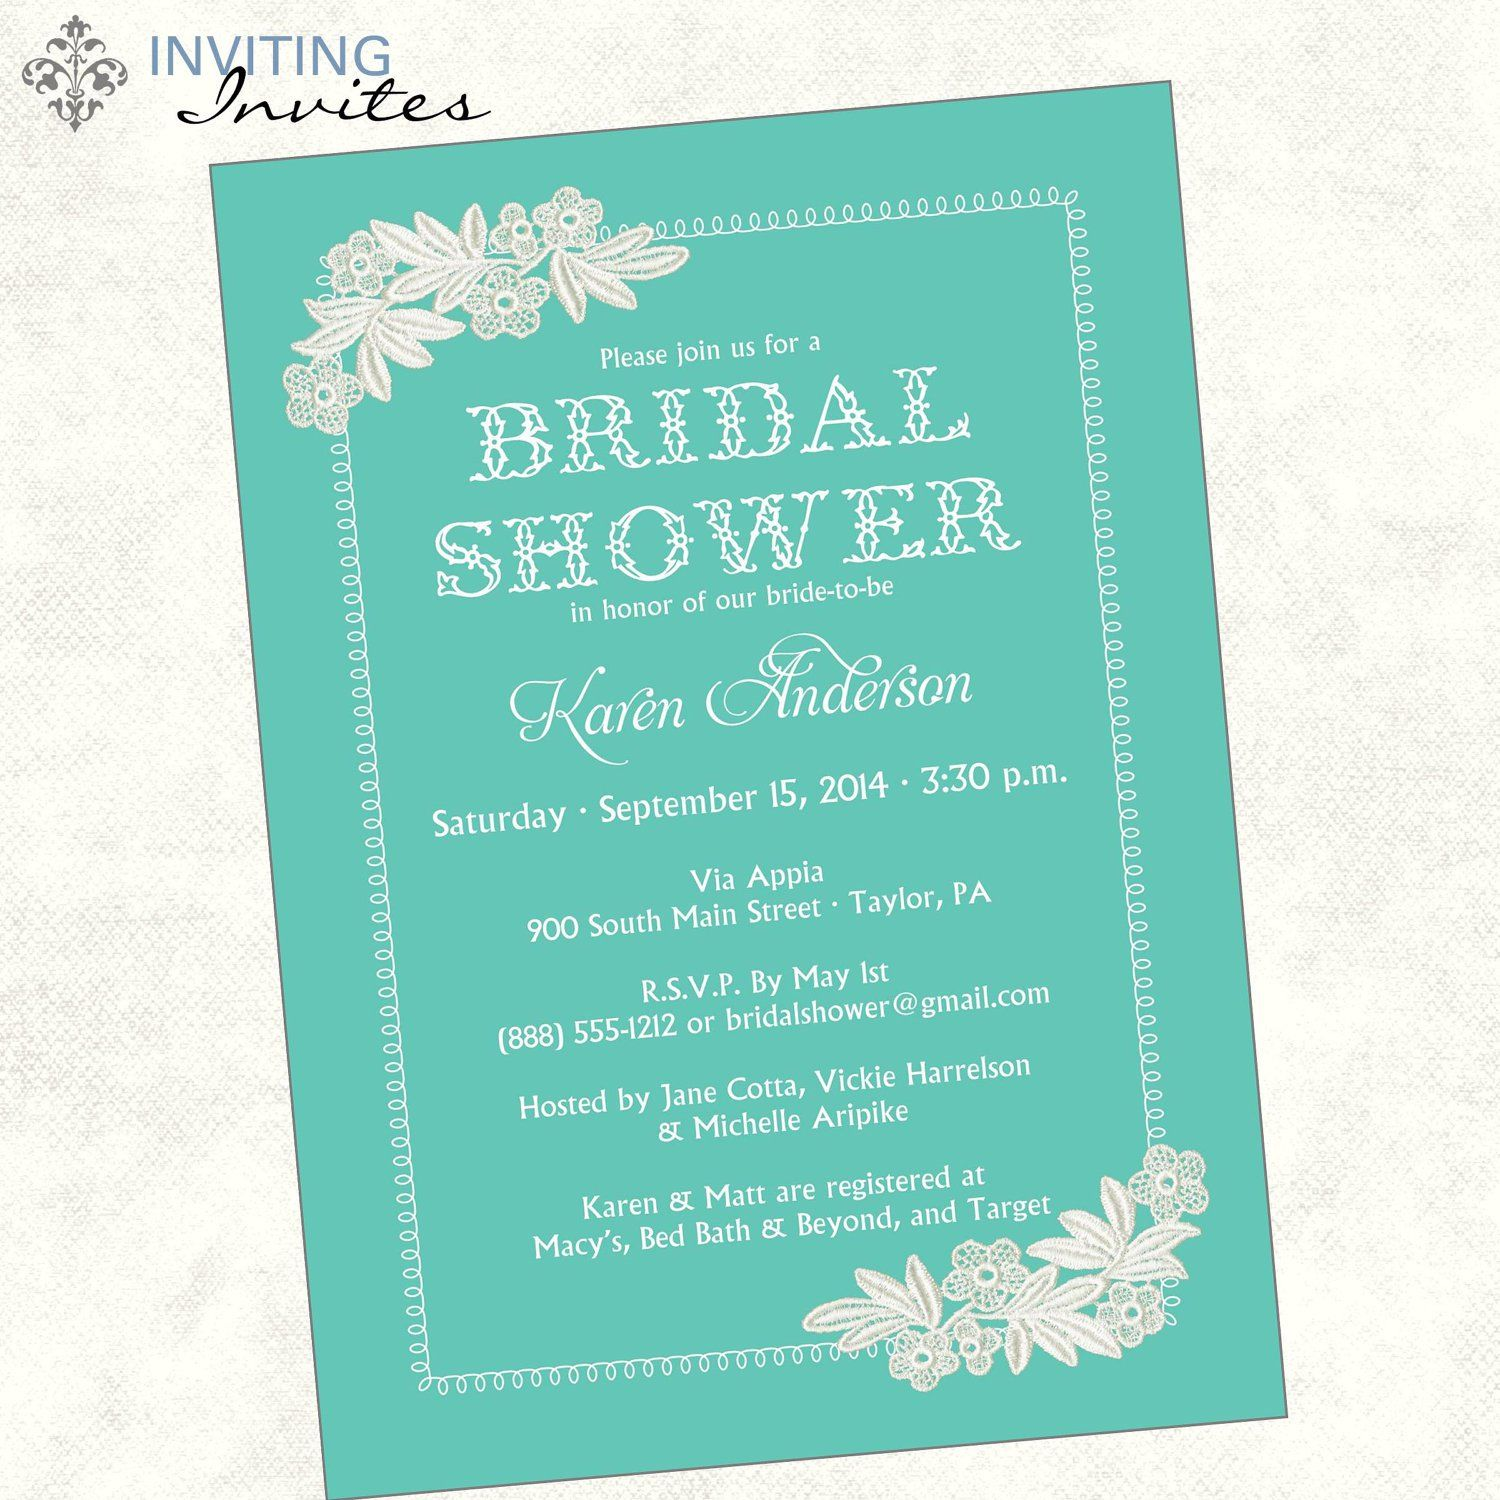 bridal shower sayings - 28 images - bridal shower recipe card ...